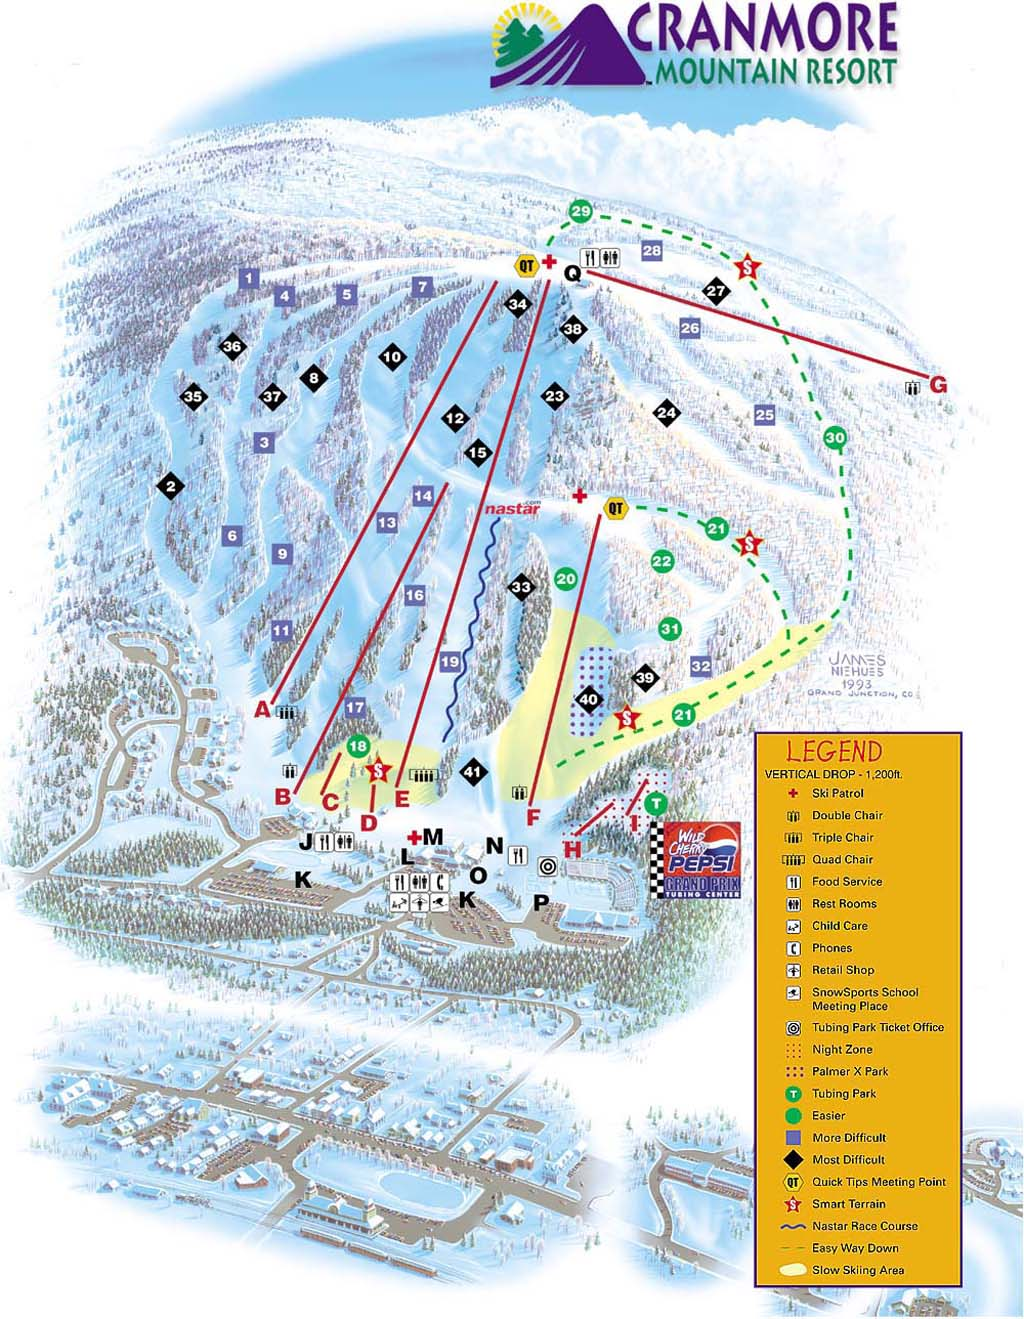 Cranmore Mountain Resort Piste / Trail Map